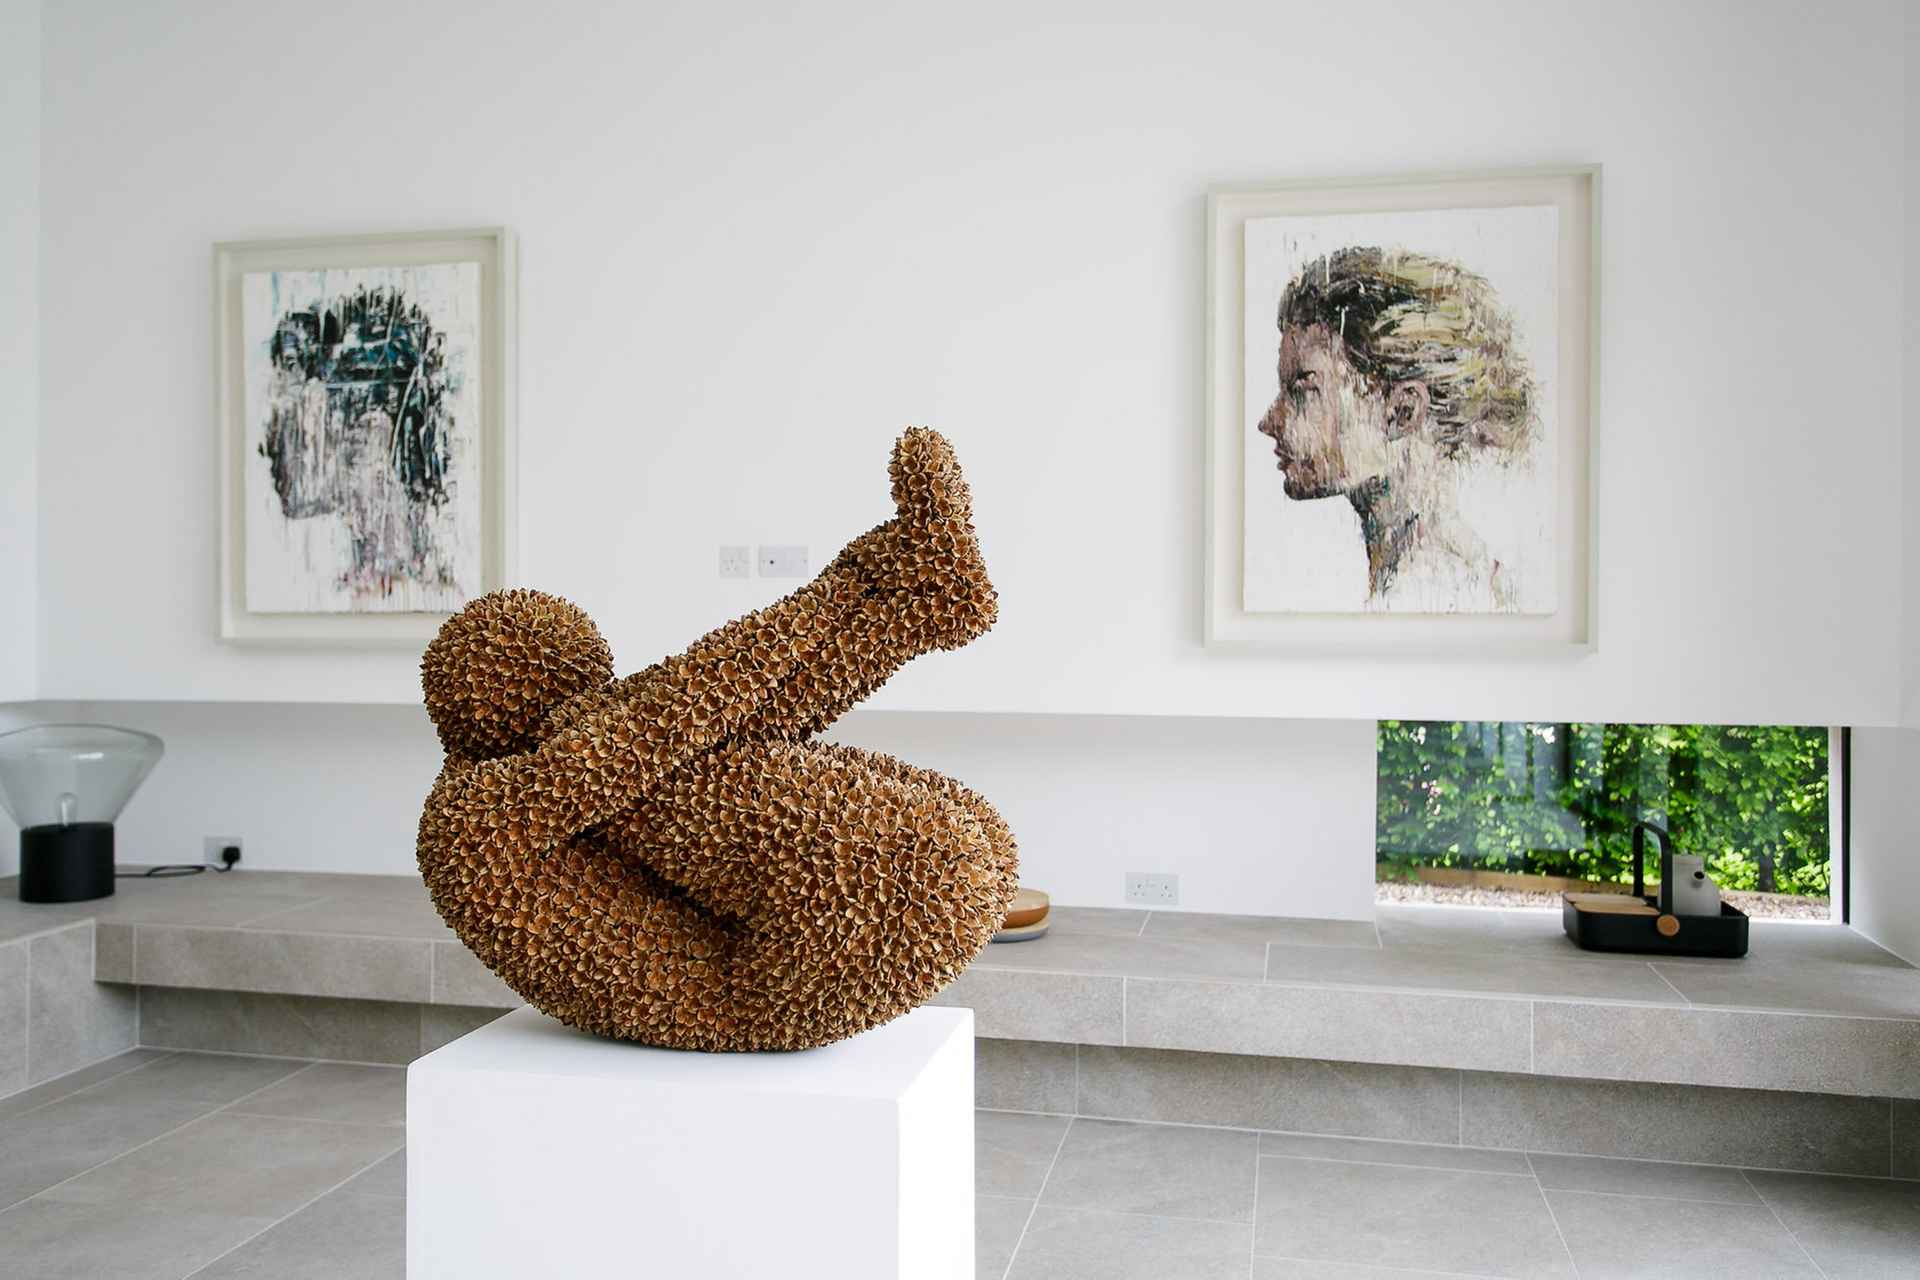 Sculpture and painting in harmony by Cheshire Home